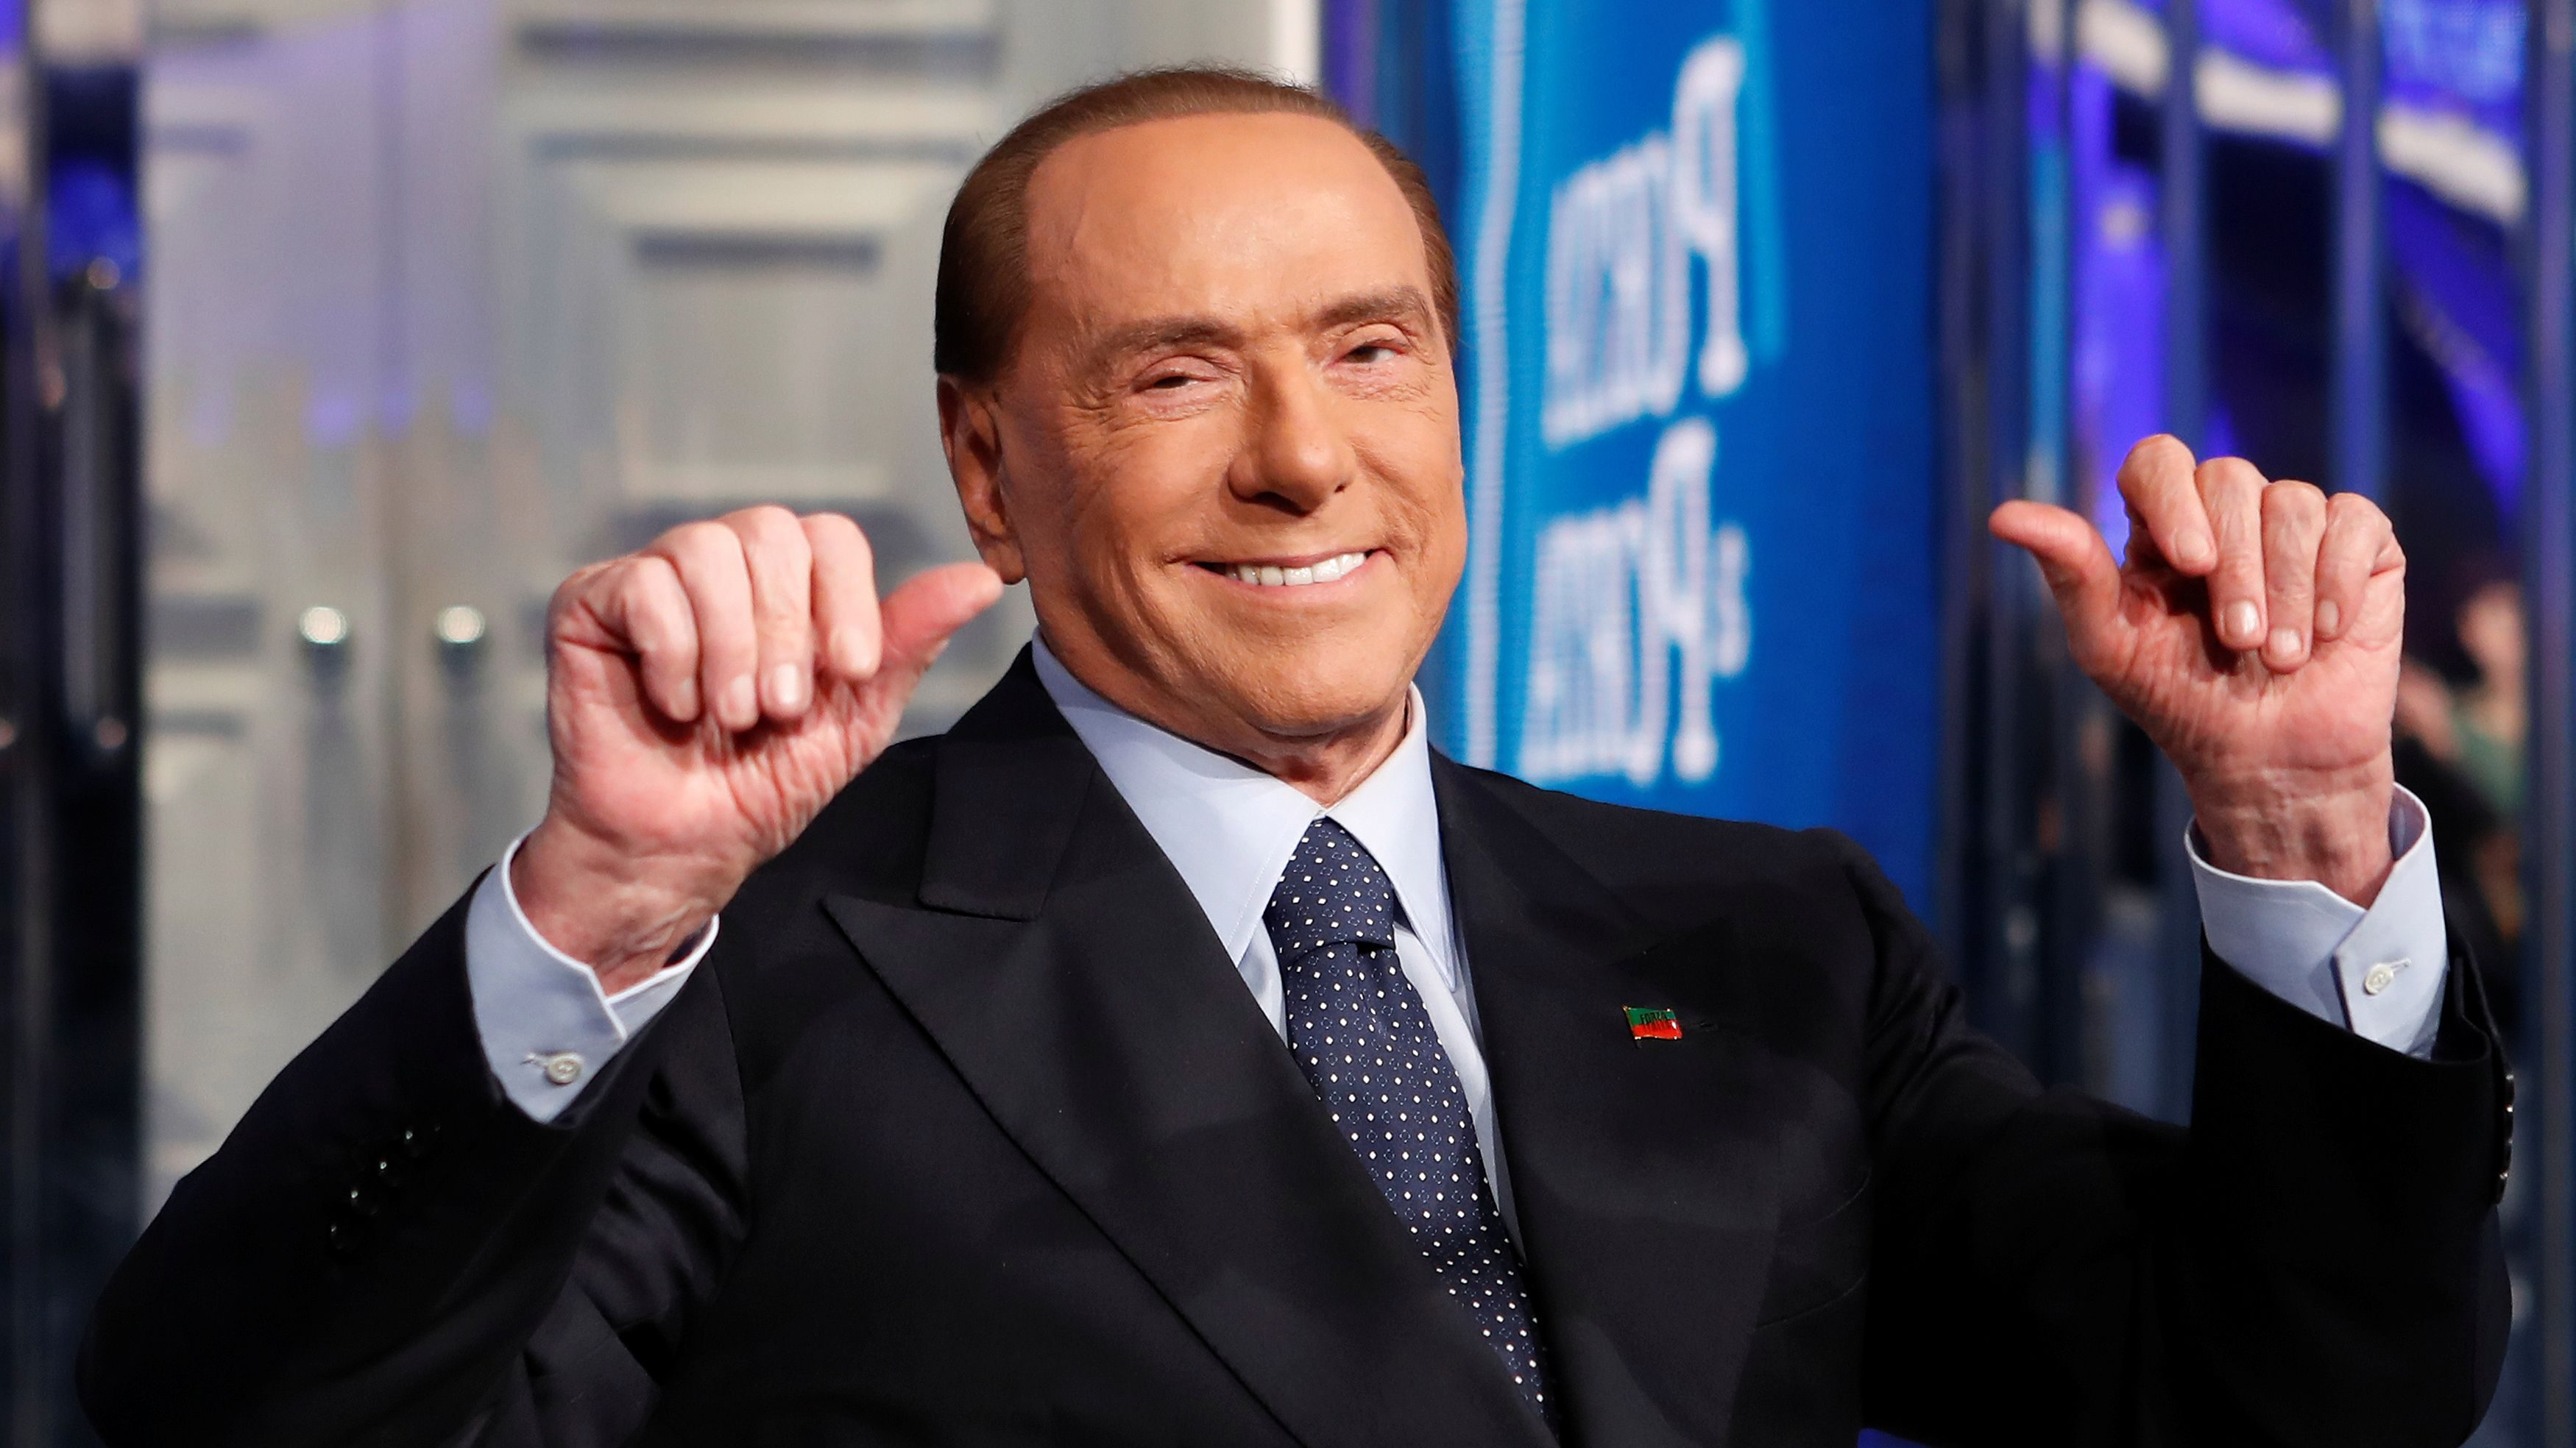 """Italy's former Prime Minister Silvio Berlusconi gestures during the taping of the television talk show """"Porta a Porta"""" (Door to Door) in Rome, Italy January 11, 2018."""